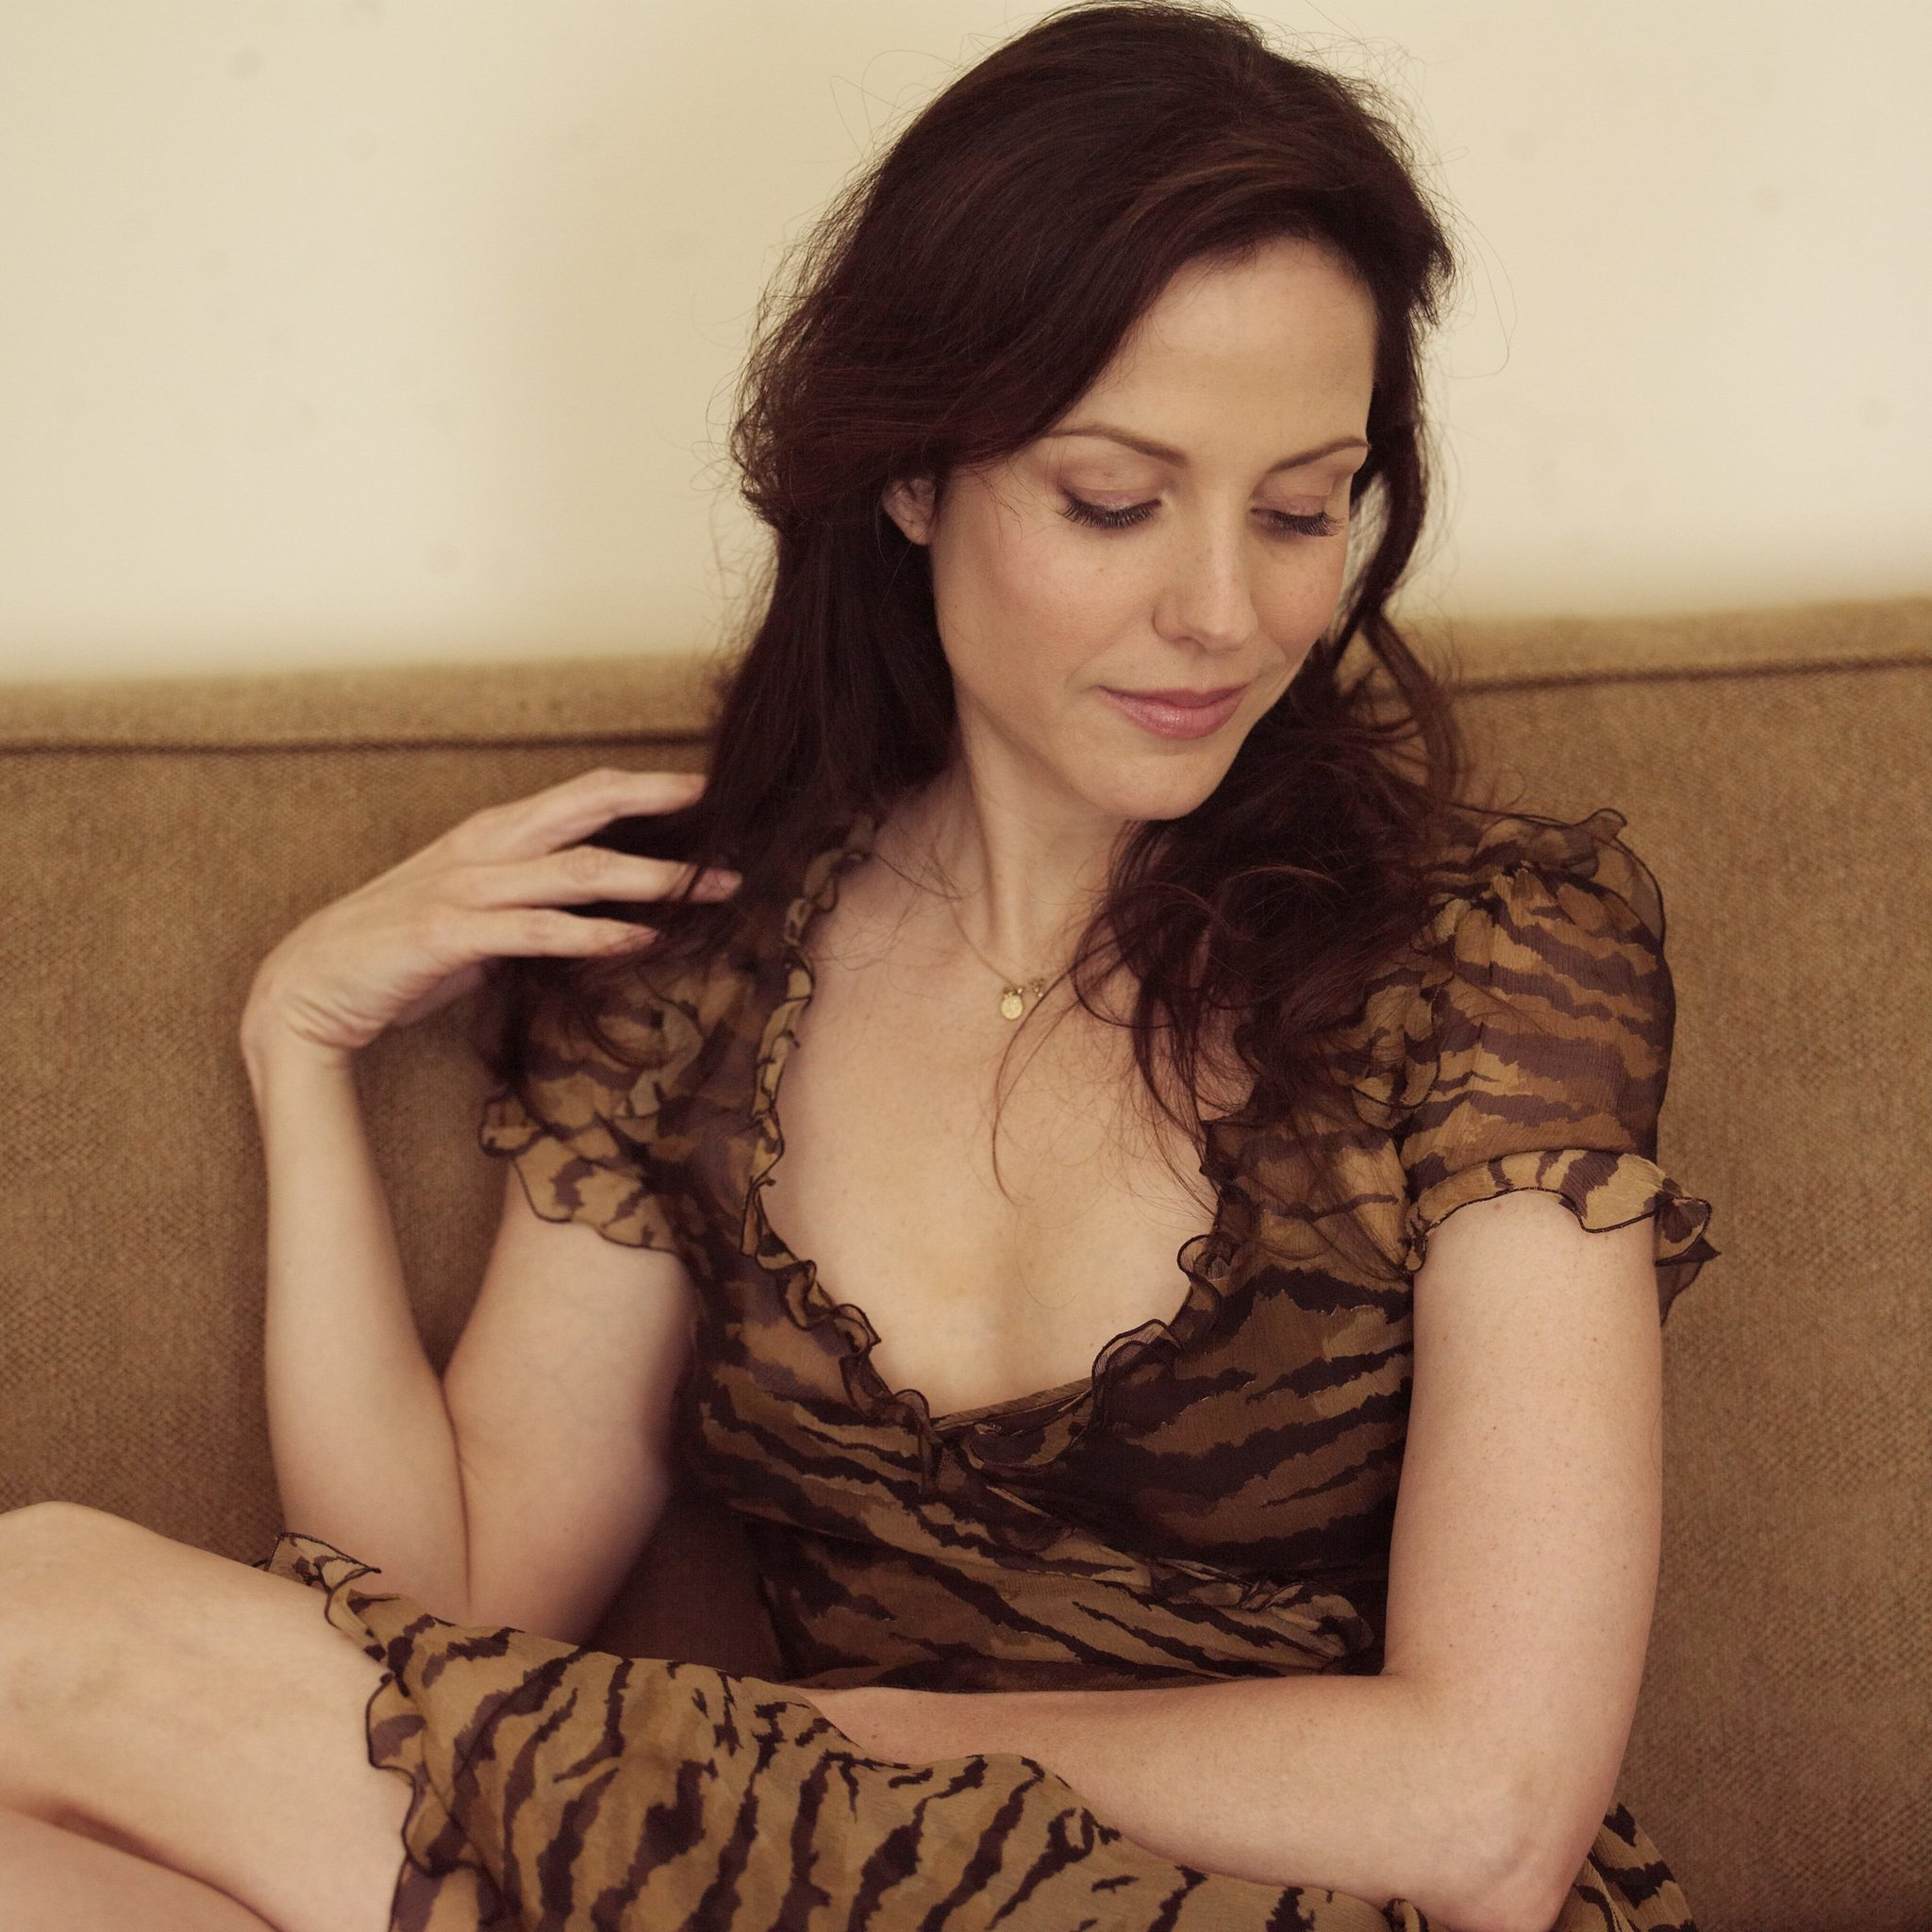 Wishing a happy birthday to Mary-Louise Parker! The actress turns 54 today